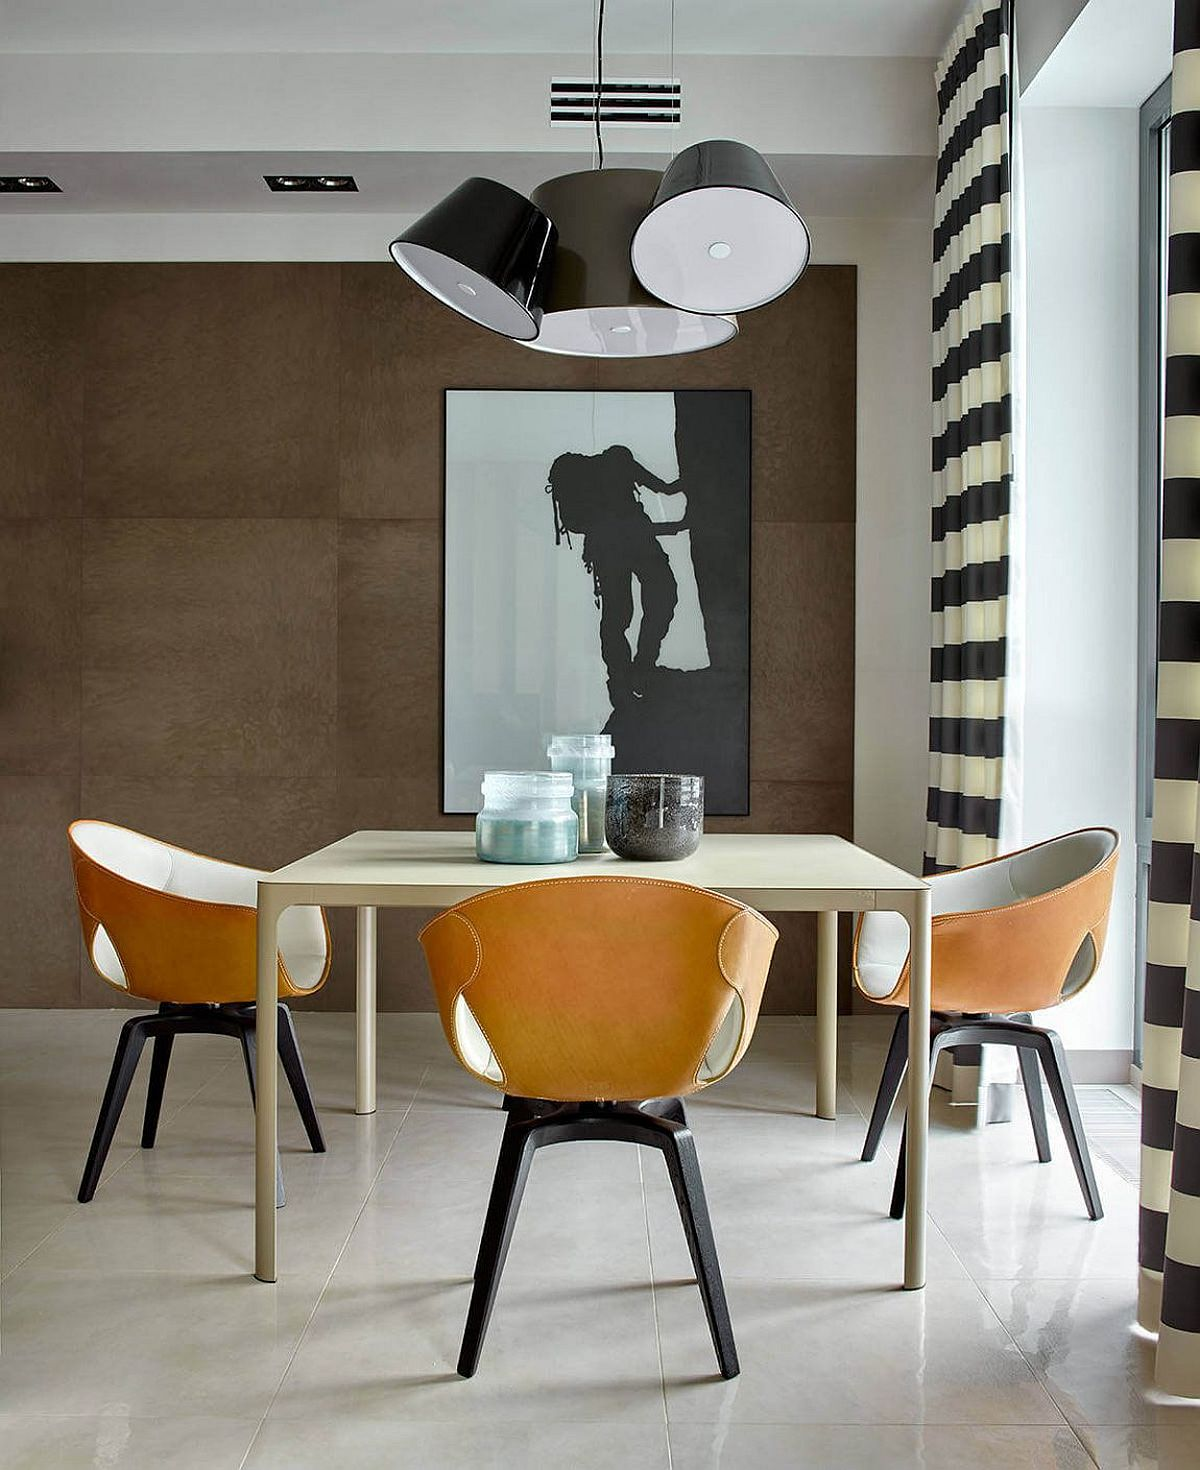 Fabulous lights and comfy chairs give the small dining area a chic appeal